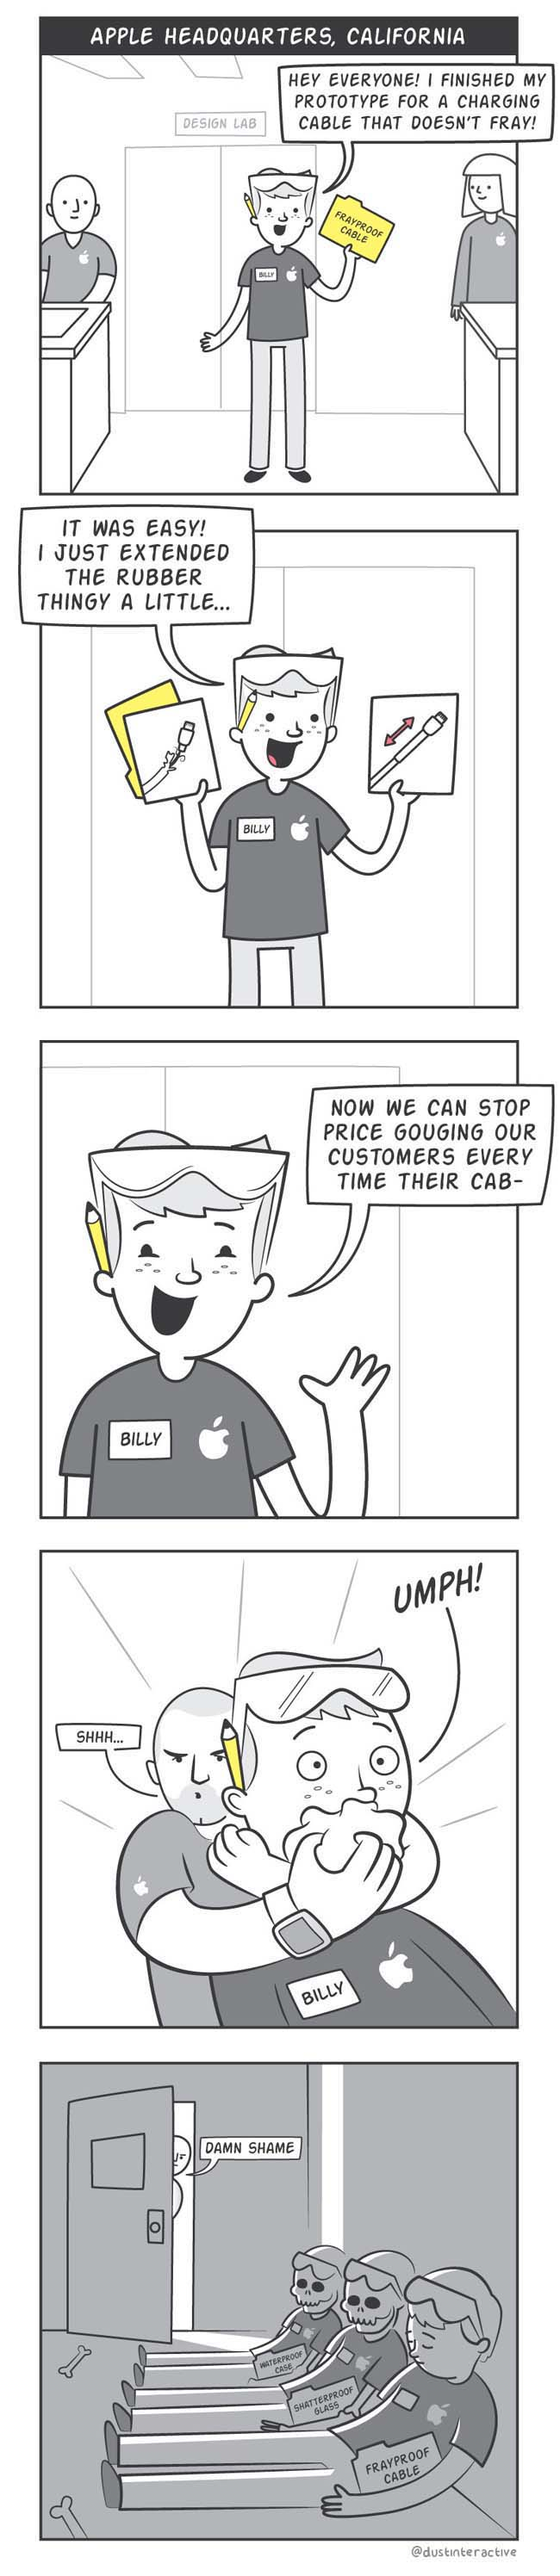 Funny comic strips and memes. (16)